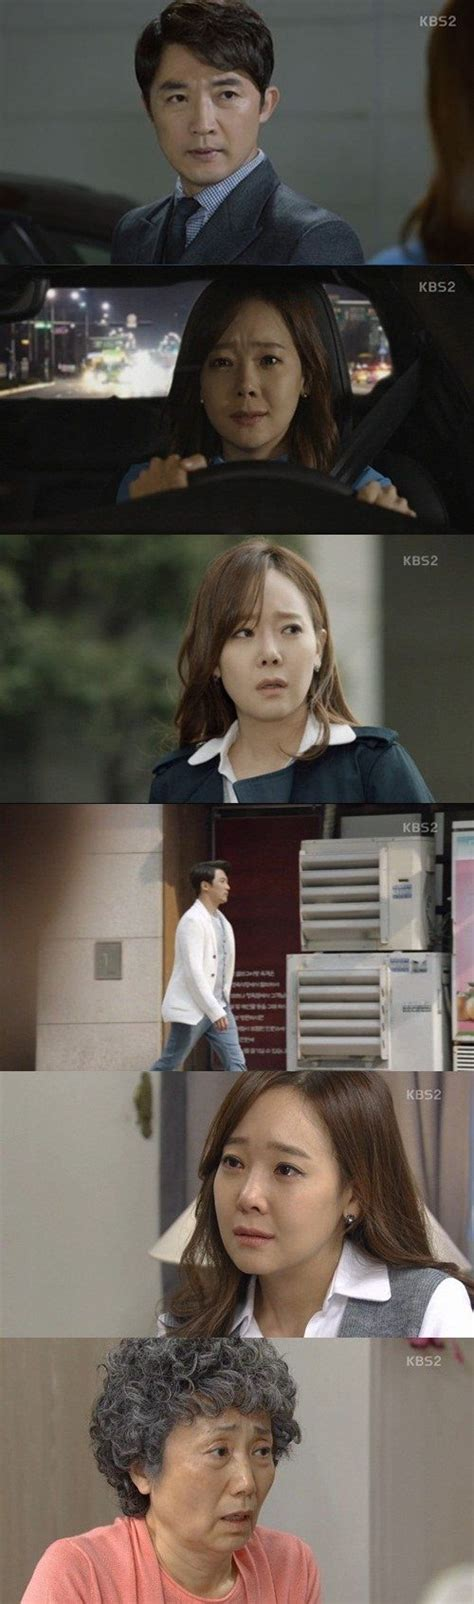 back to the time jung jae wook ask k pop quot five children quot so yoo jin realizes what ahn jae